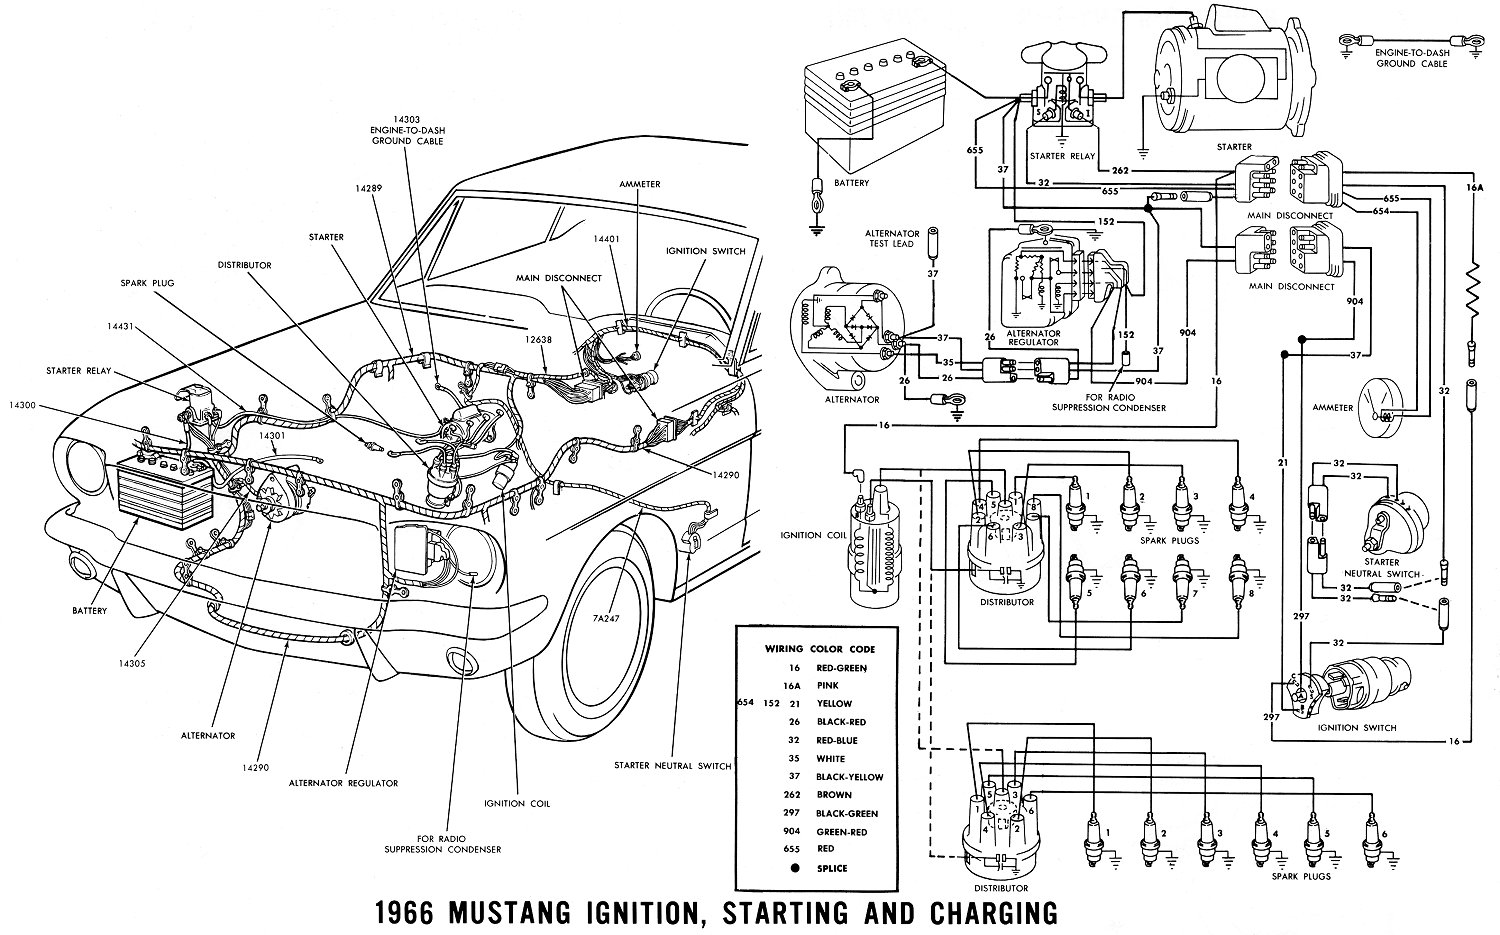 DIAGRAM] 85 Mustang Ignition Wiring Diagram FULL Version HD Quality Wiring  Diagram - ANATOMYDIAGRAMCLASS.K-DANSE.FR